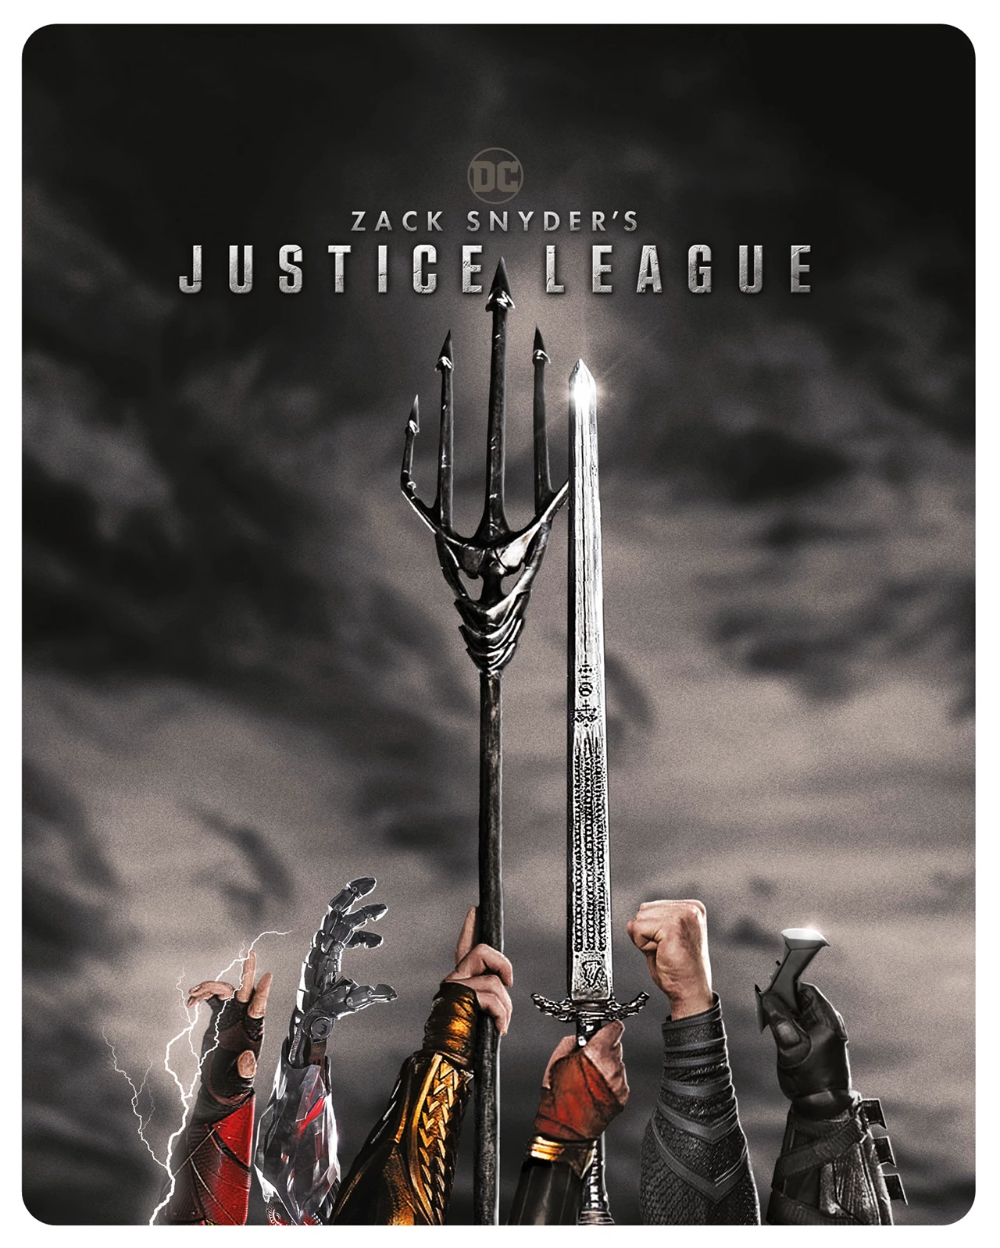 Zack Snyder S Justice League Hmv Exclusive Limited Edition Steelbook 4k Ultra Hd Blu Ray Free Shipping Over 20 Hmv Store In 2021 Justice League Justice League 1 Dc Comics Wallpaper